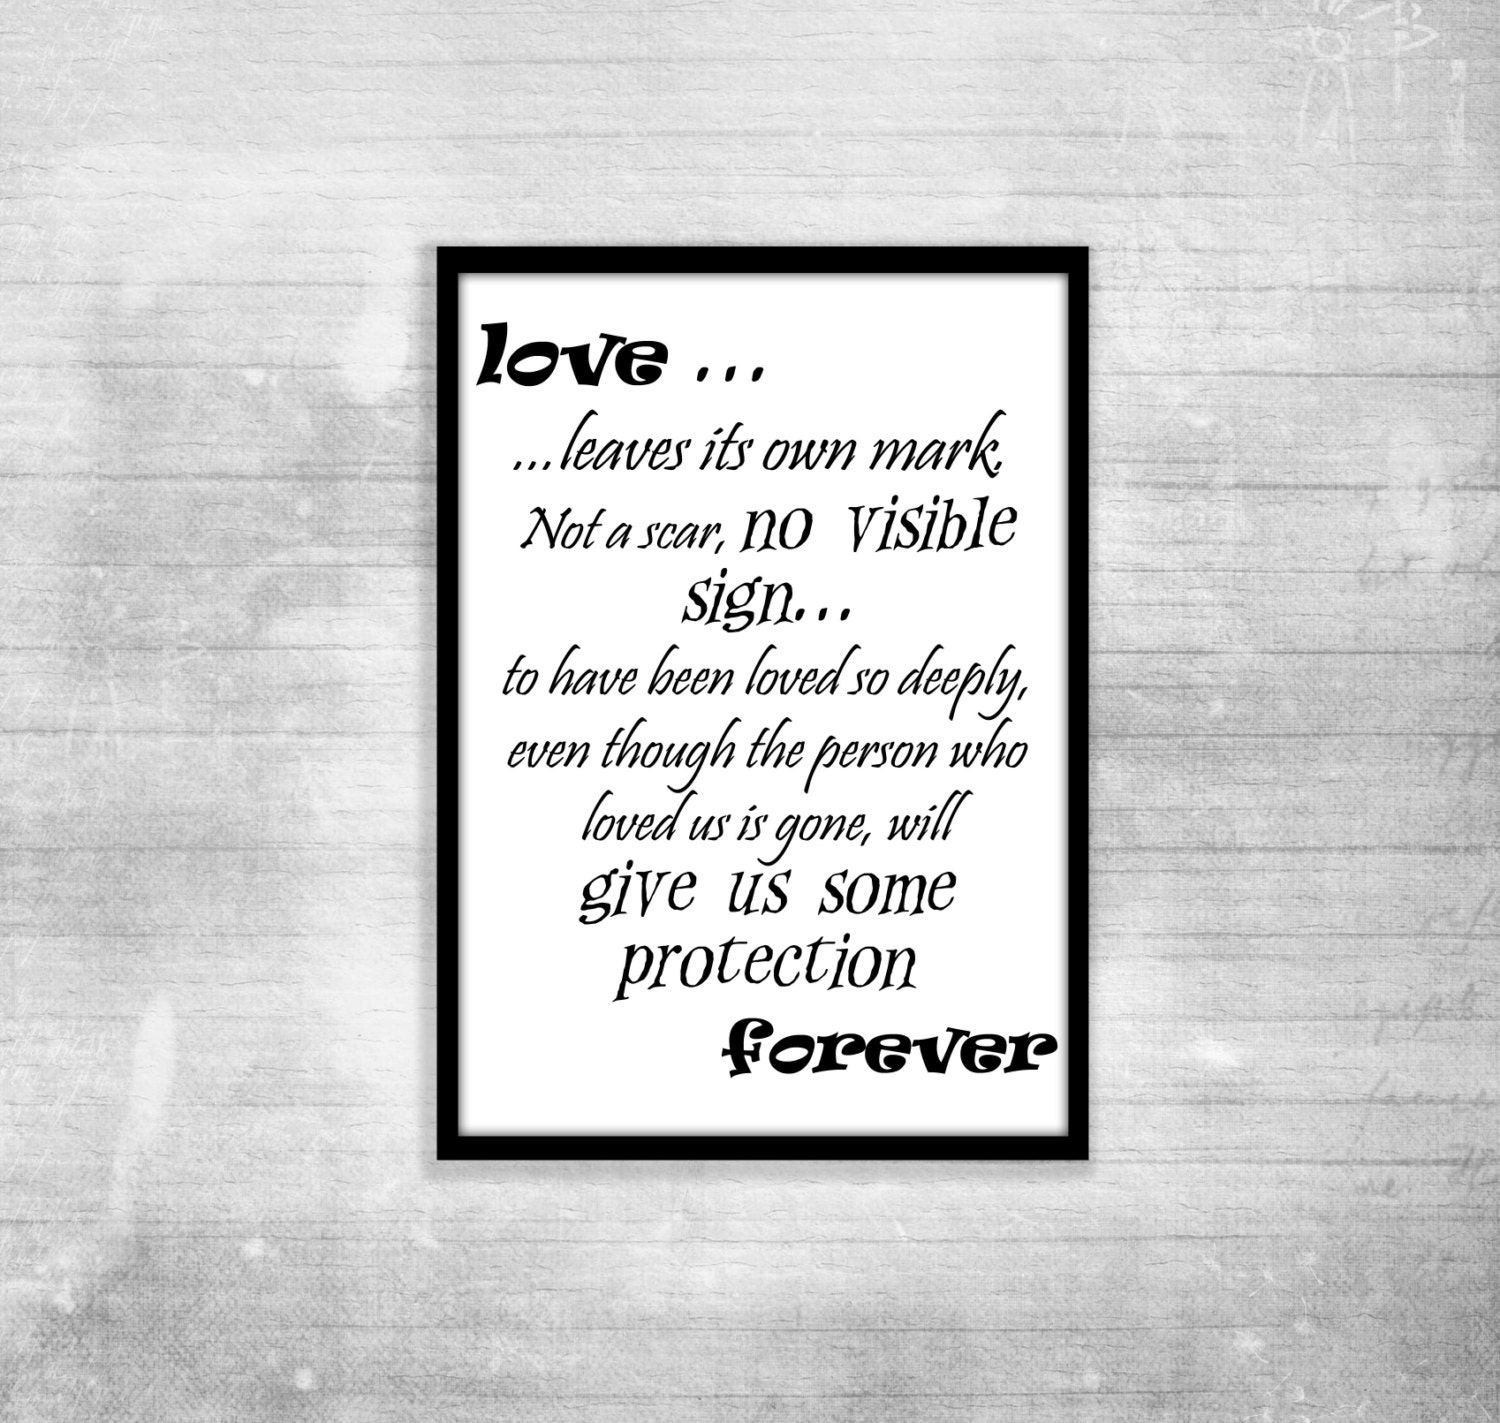 Harry Potter Book Quotes Inspiring ~ Harry potter poster quote albus dumbledore love inspiration etsy